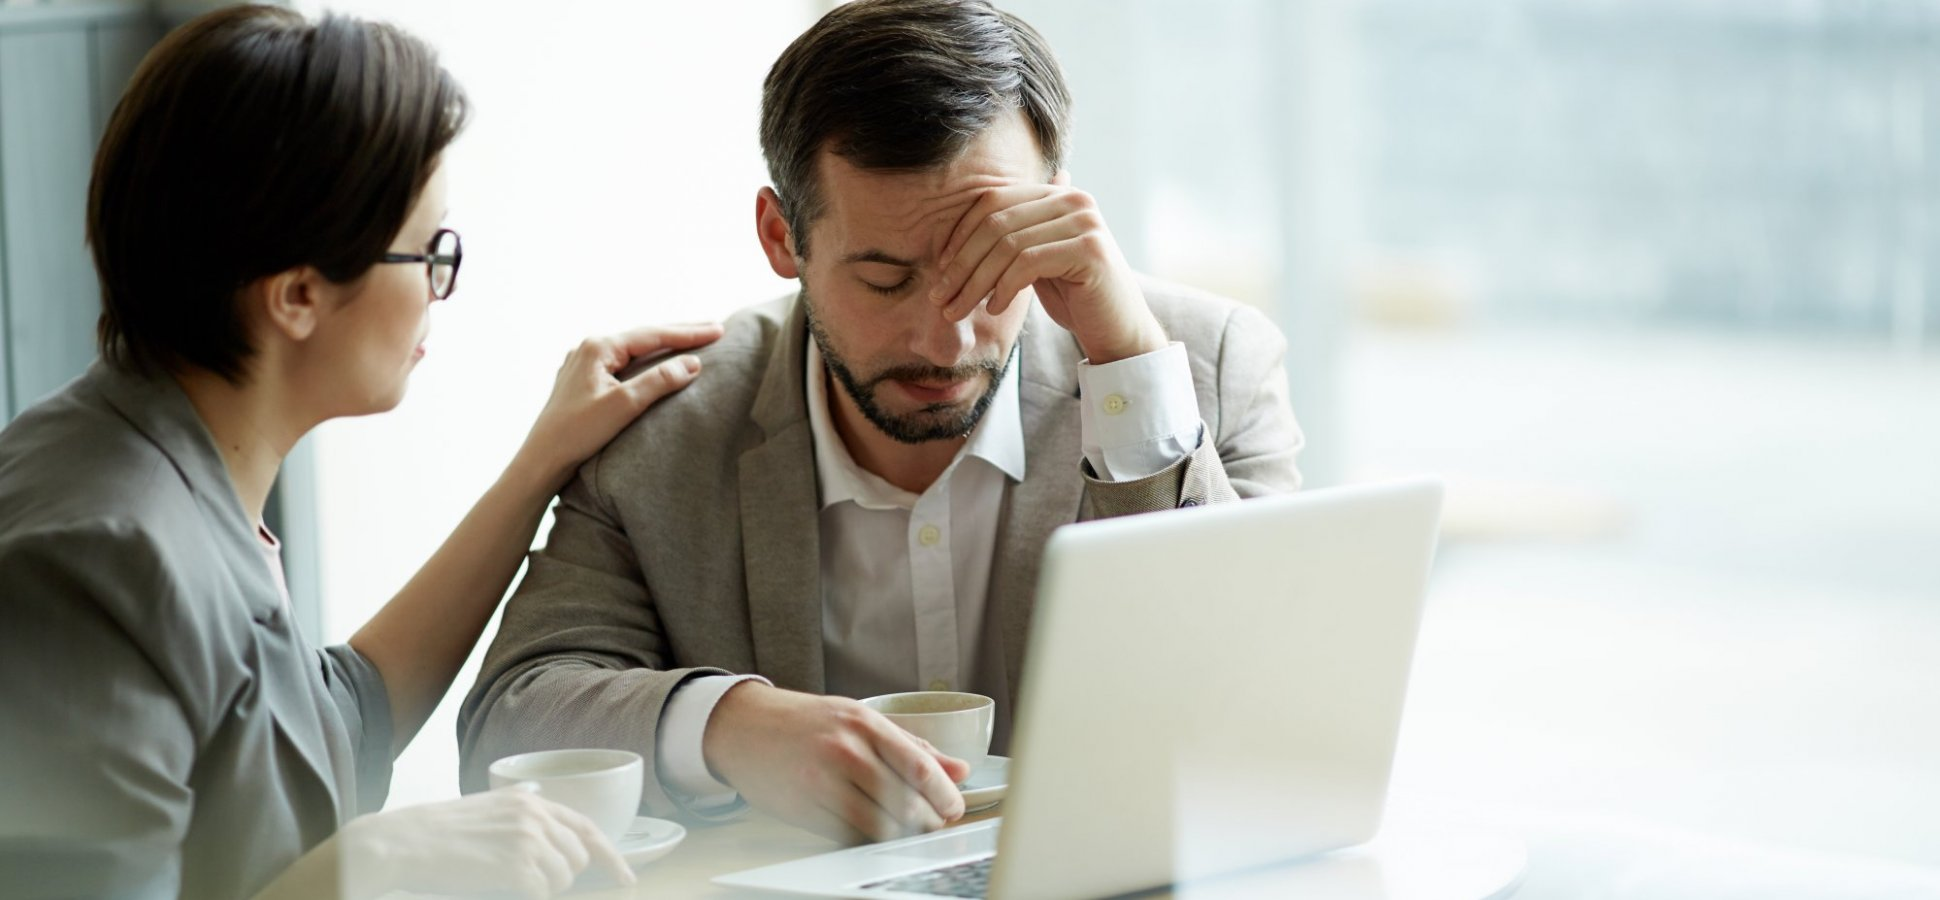 If You're Hiring in 2019, Avoid This Company-Dooming Employee